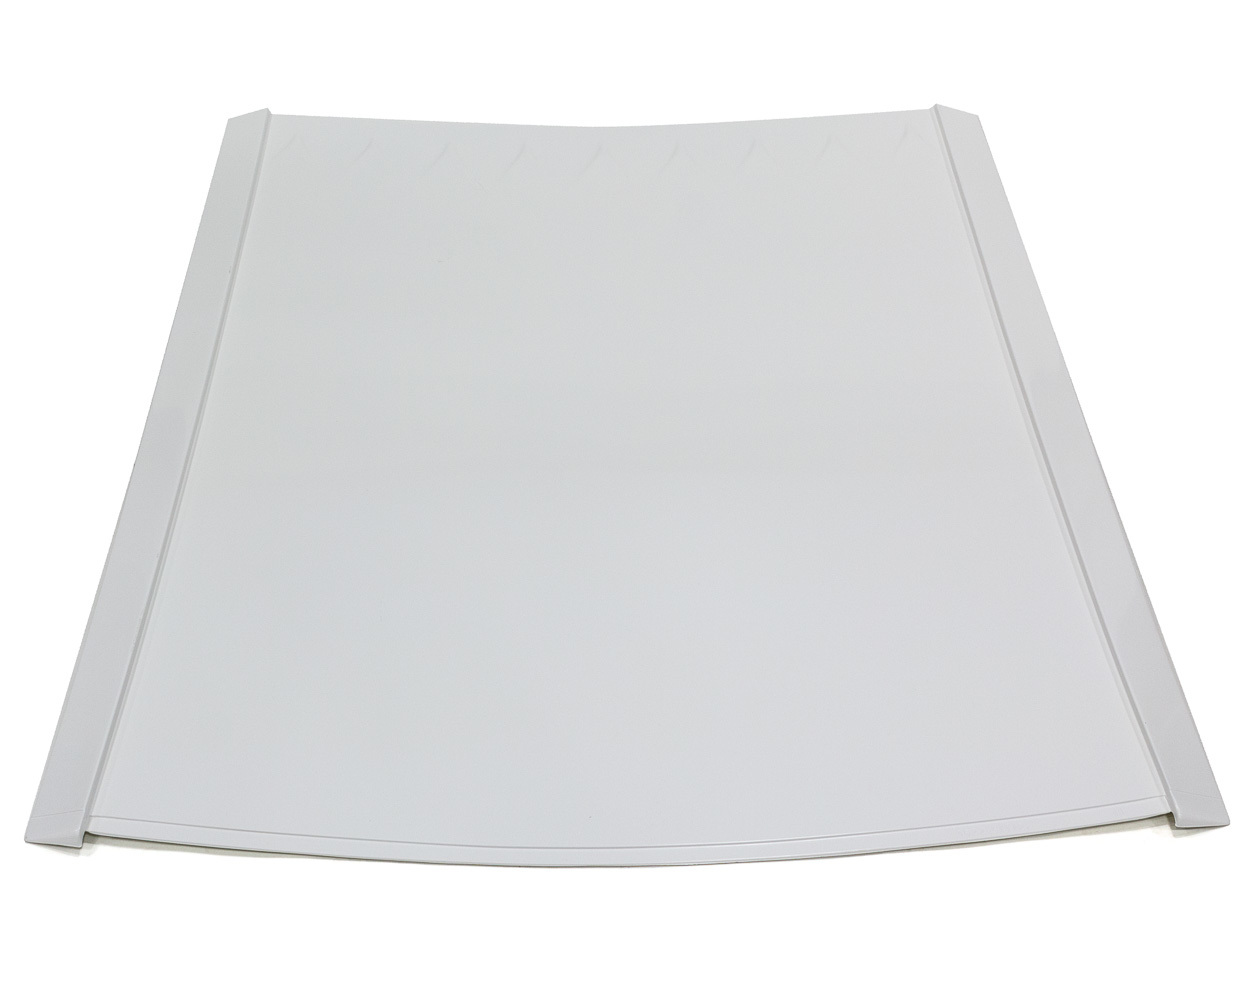 Fivestar MD3 L/W Modified Roof White w/o Roof Cap